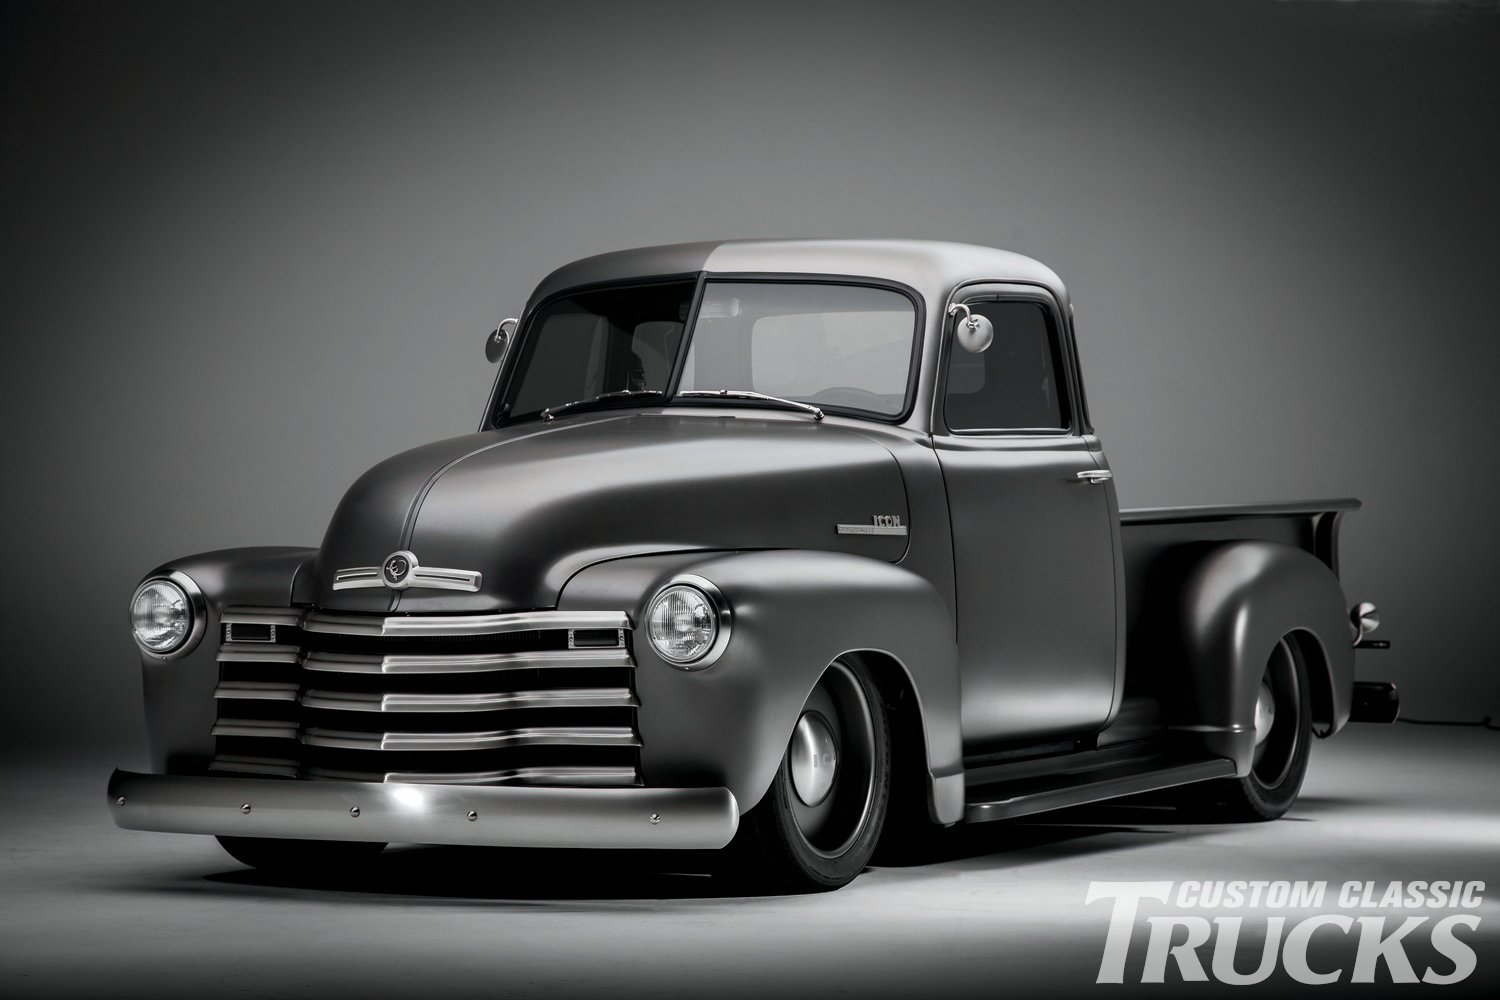 14 Chevrolet Truck Icons Images